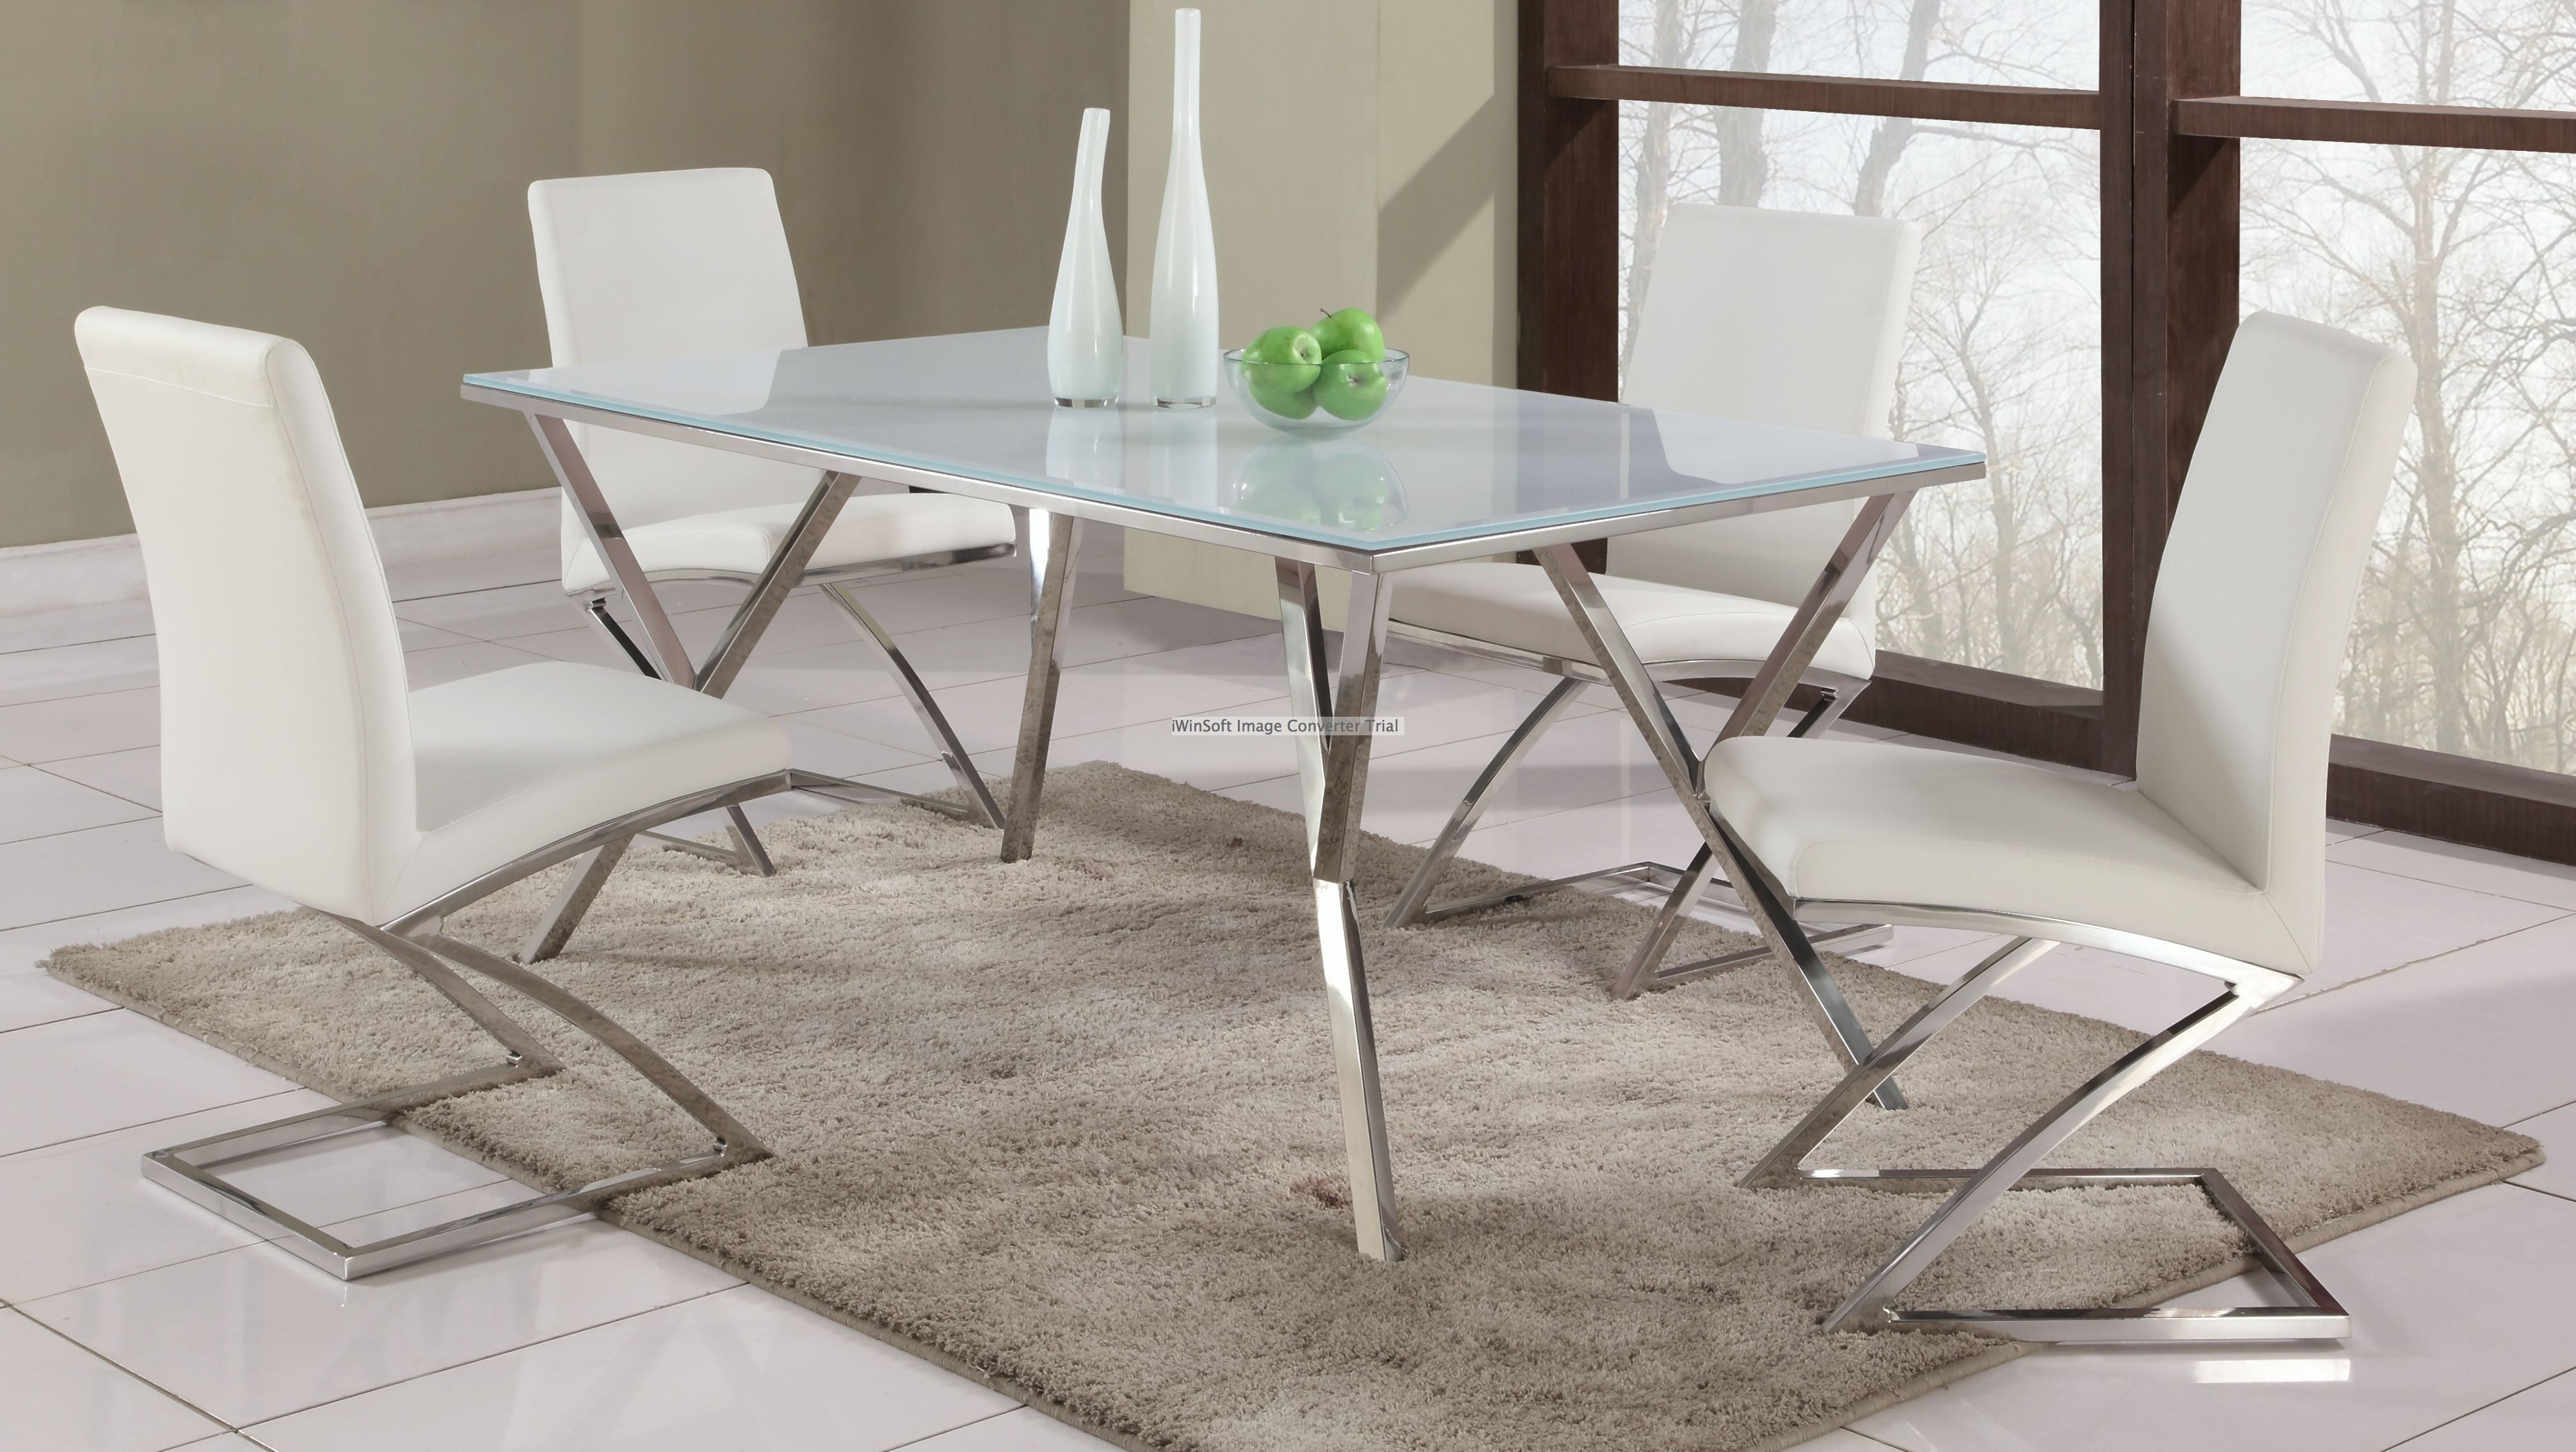 Jade Dining Set 5 Pieces Stainless Steel Dining Table Steel